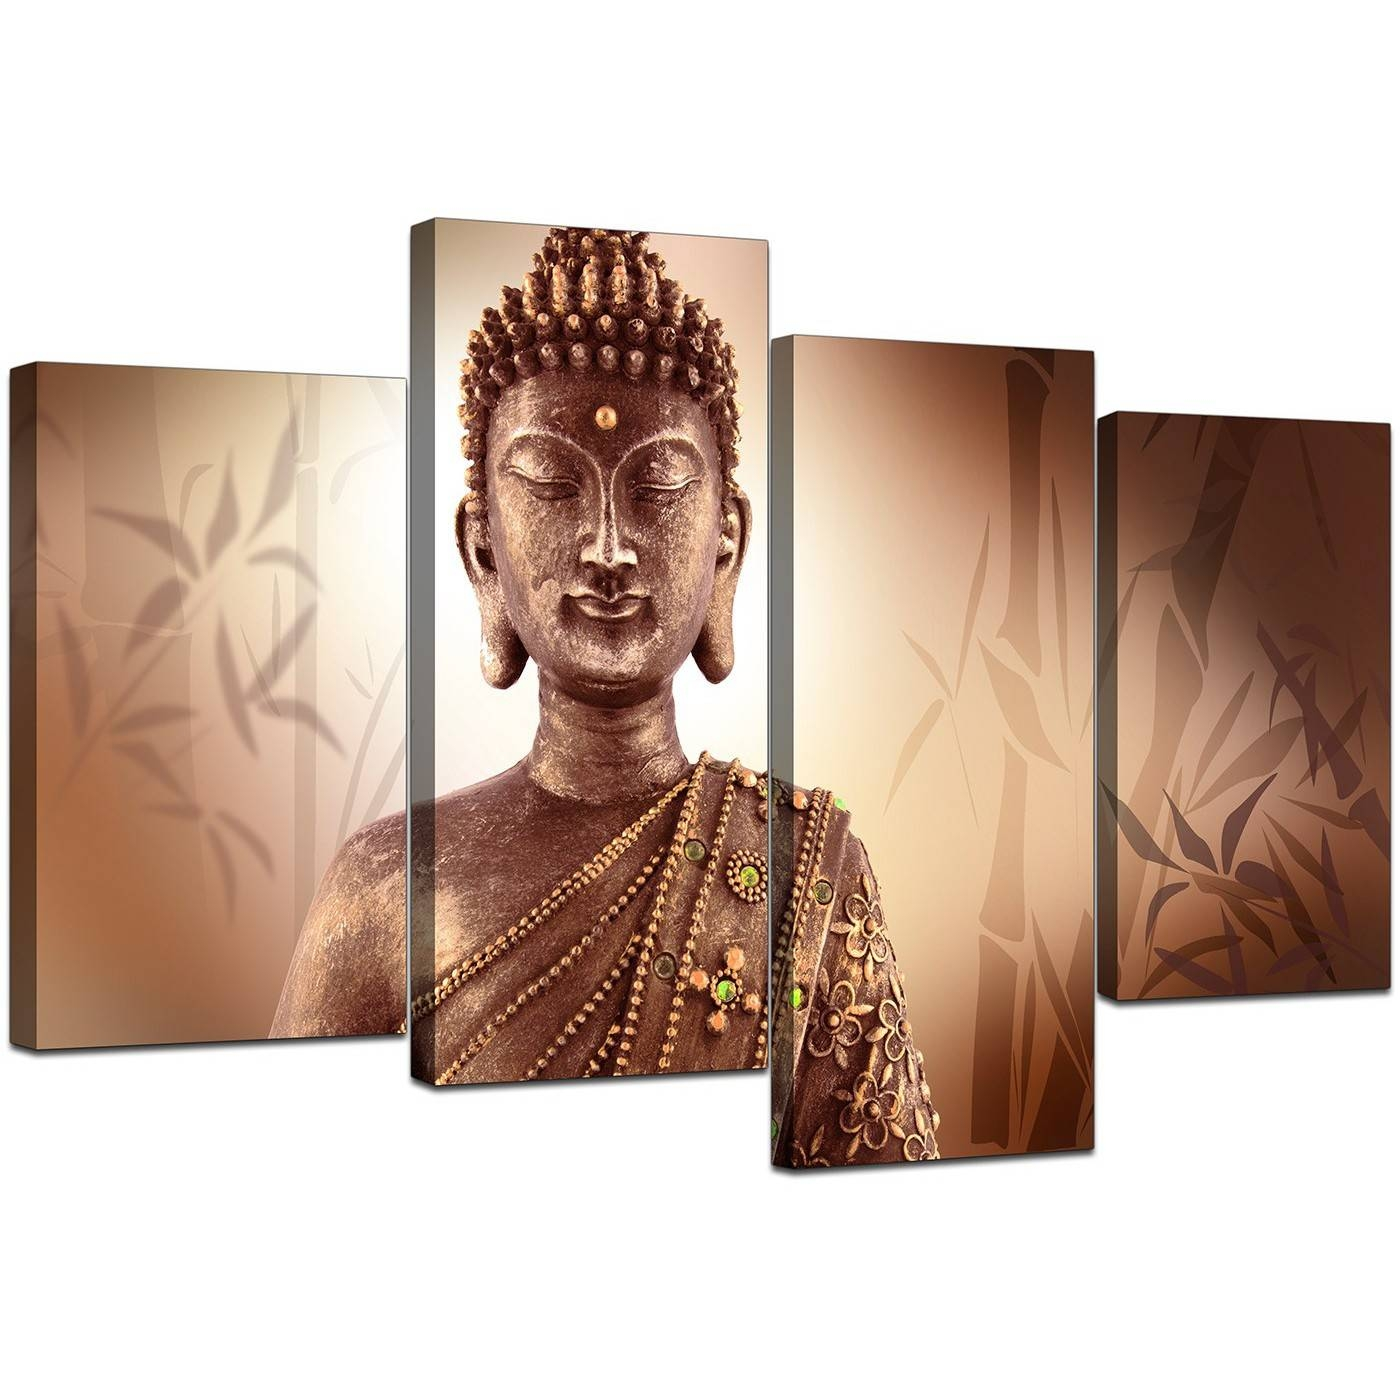 Canvas Wall Art Of Buddha In Brown For Your Hallway Inside Latest Buddha Metal Wall Art (View 7 of 20)